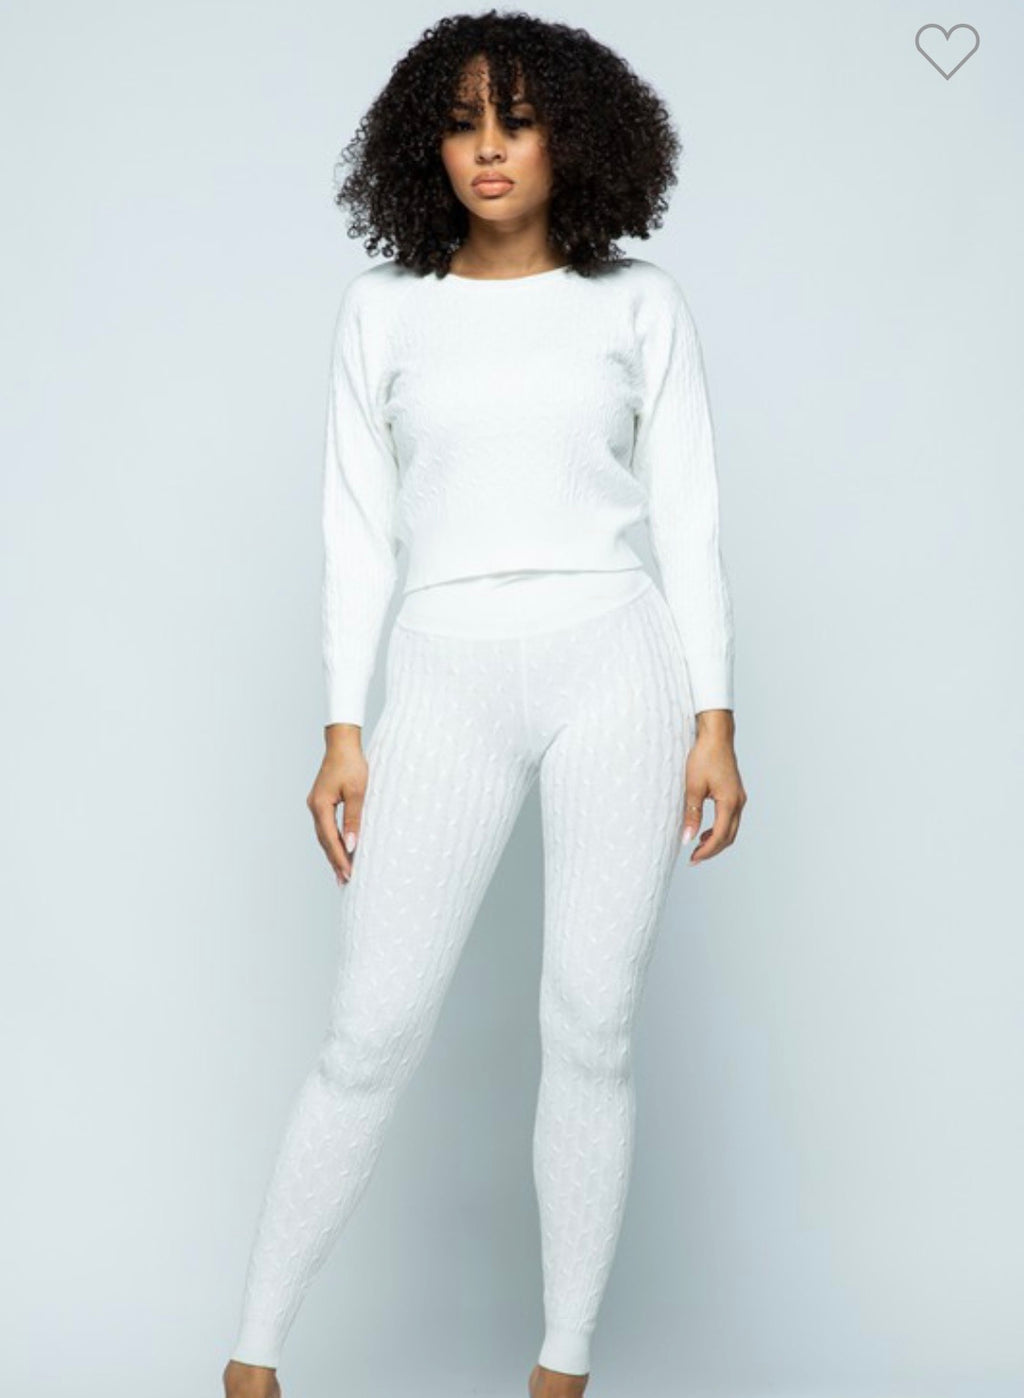 iRelaxx Cable Knit Loungewear